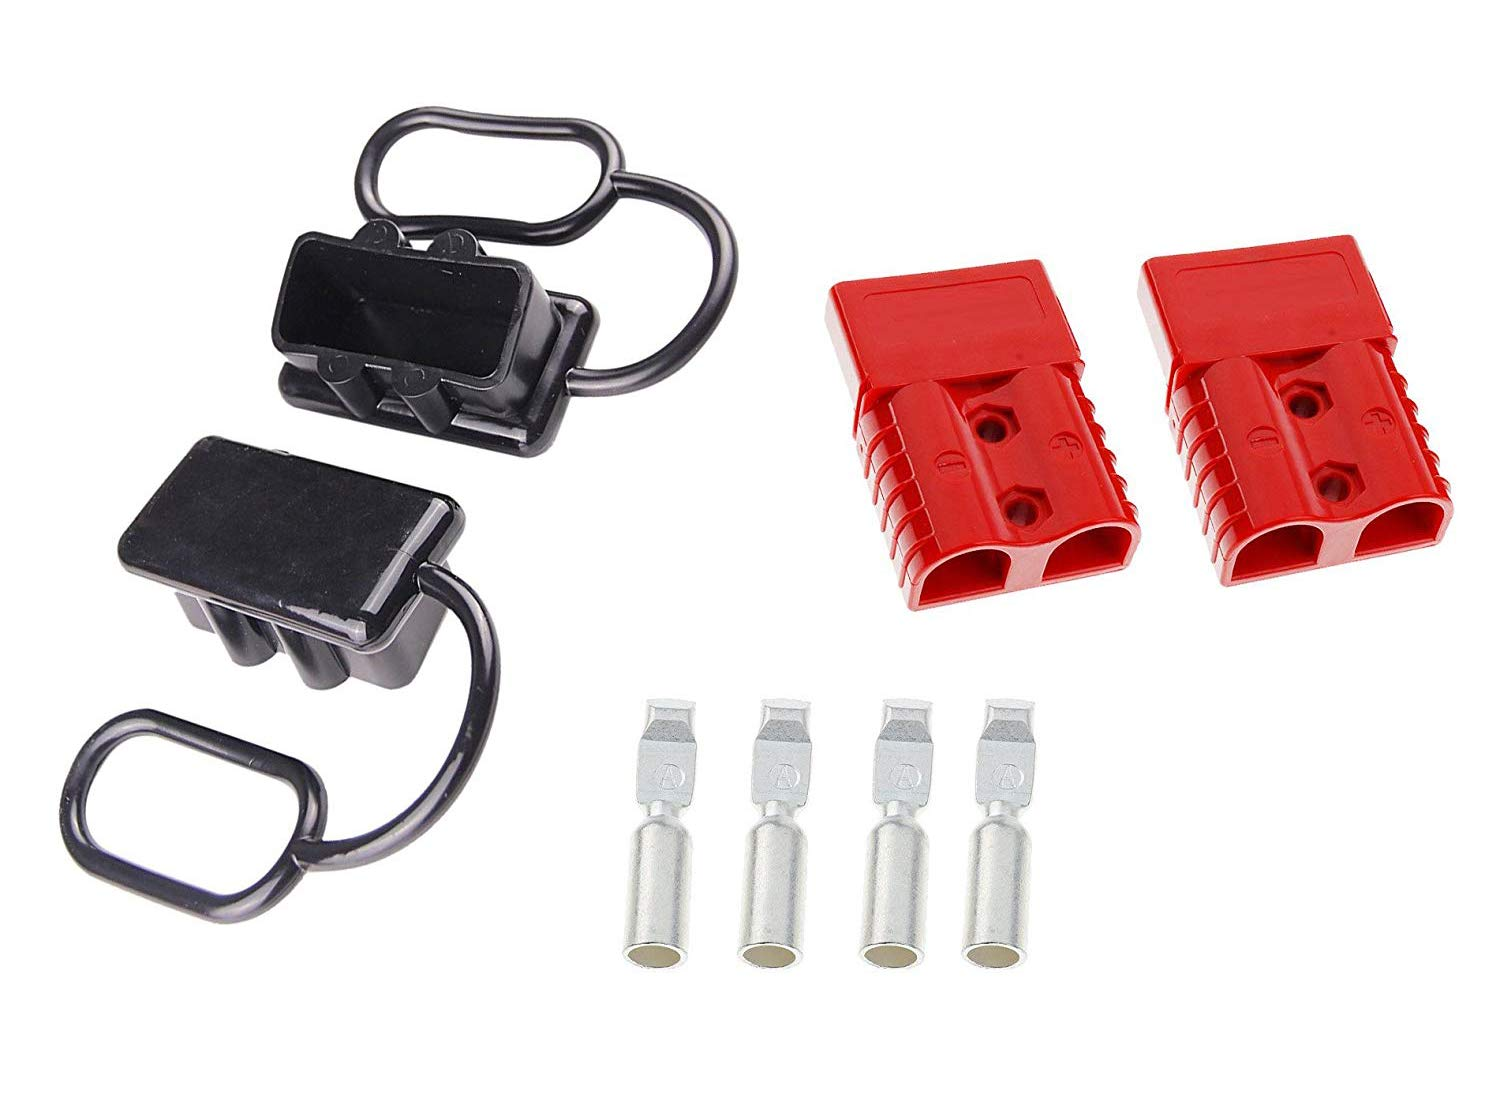 6-10AWG 120A Battery Connect Quick Connector Plug Karcy Battery Wire Quick Disconnect Connector Plug Kit for 12-36V Winch Trailer Driver Electrical Devices Red 1Pair by Karcy